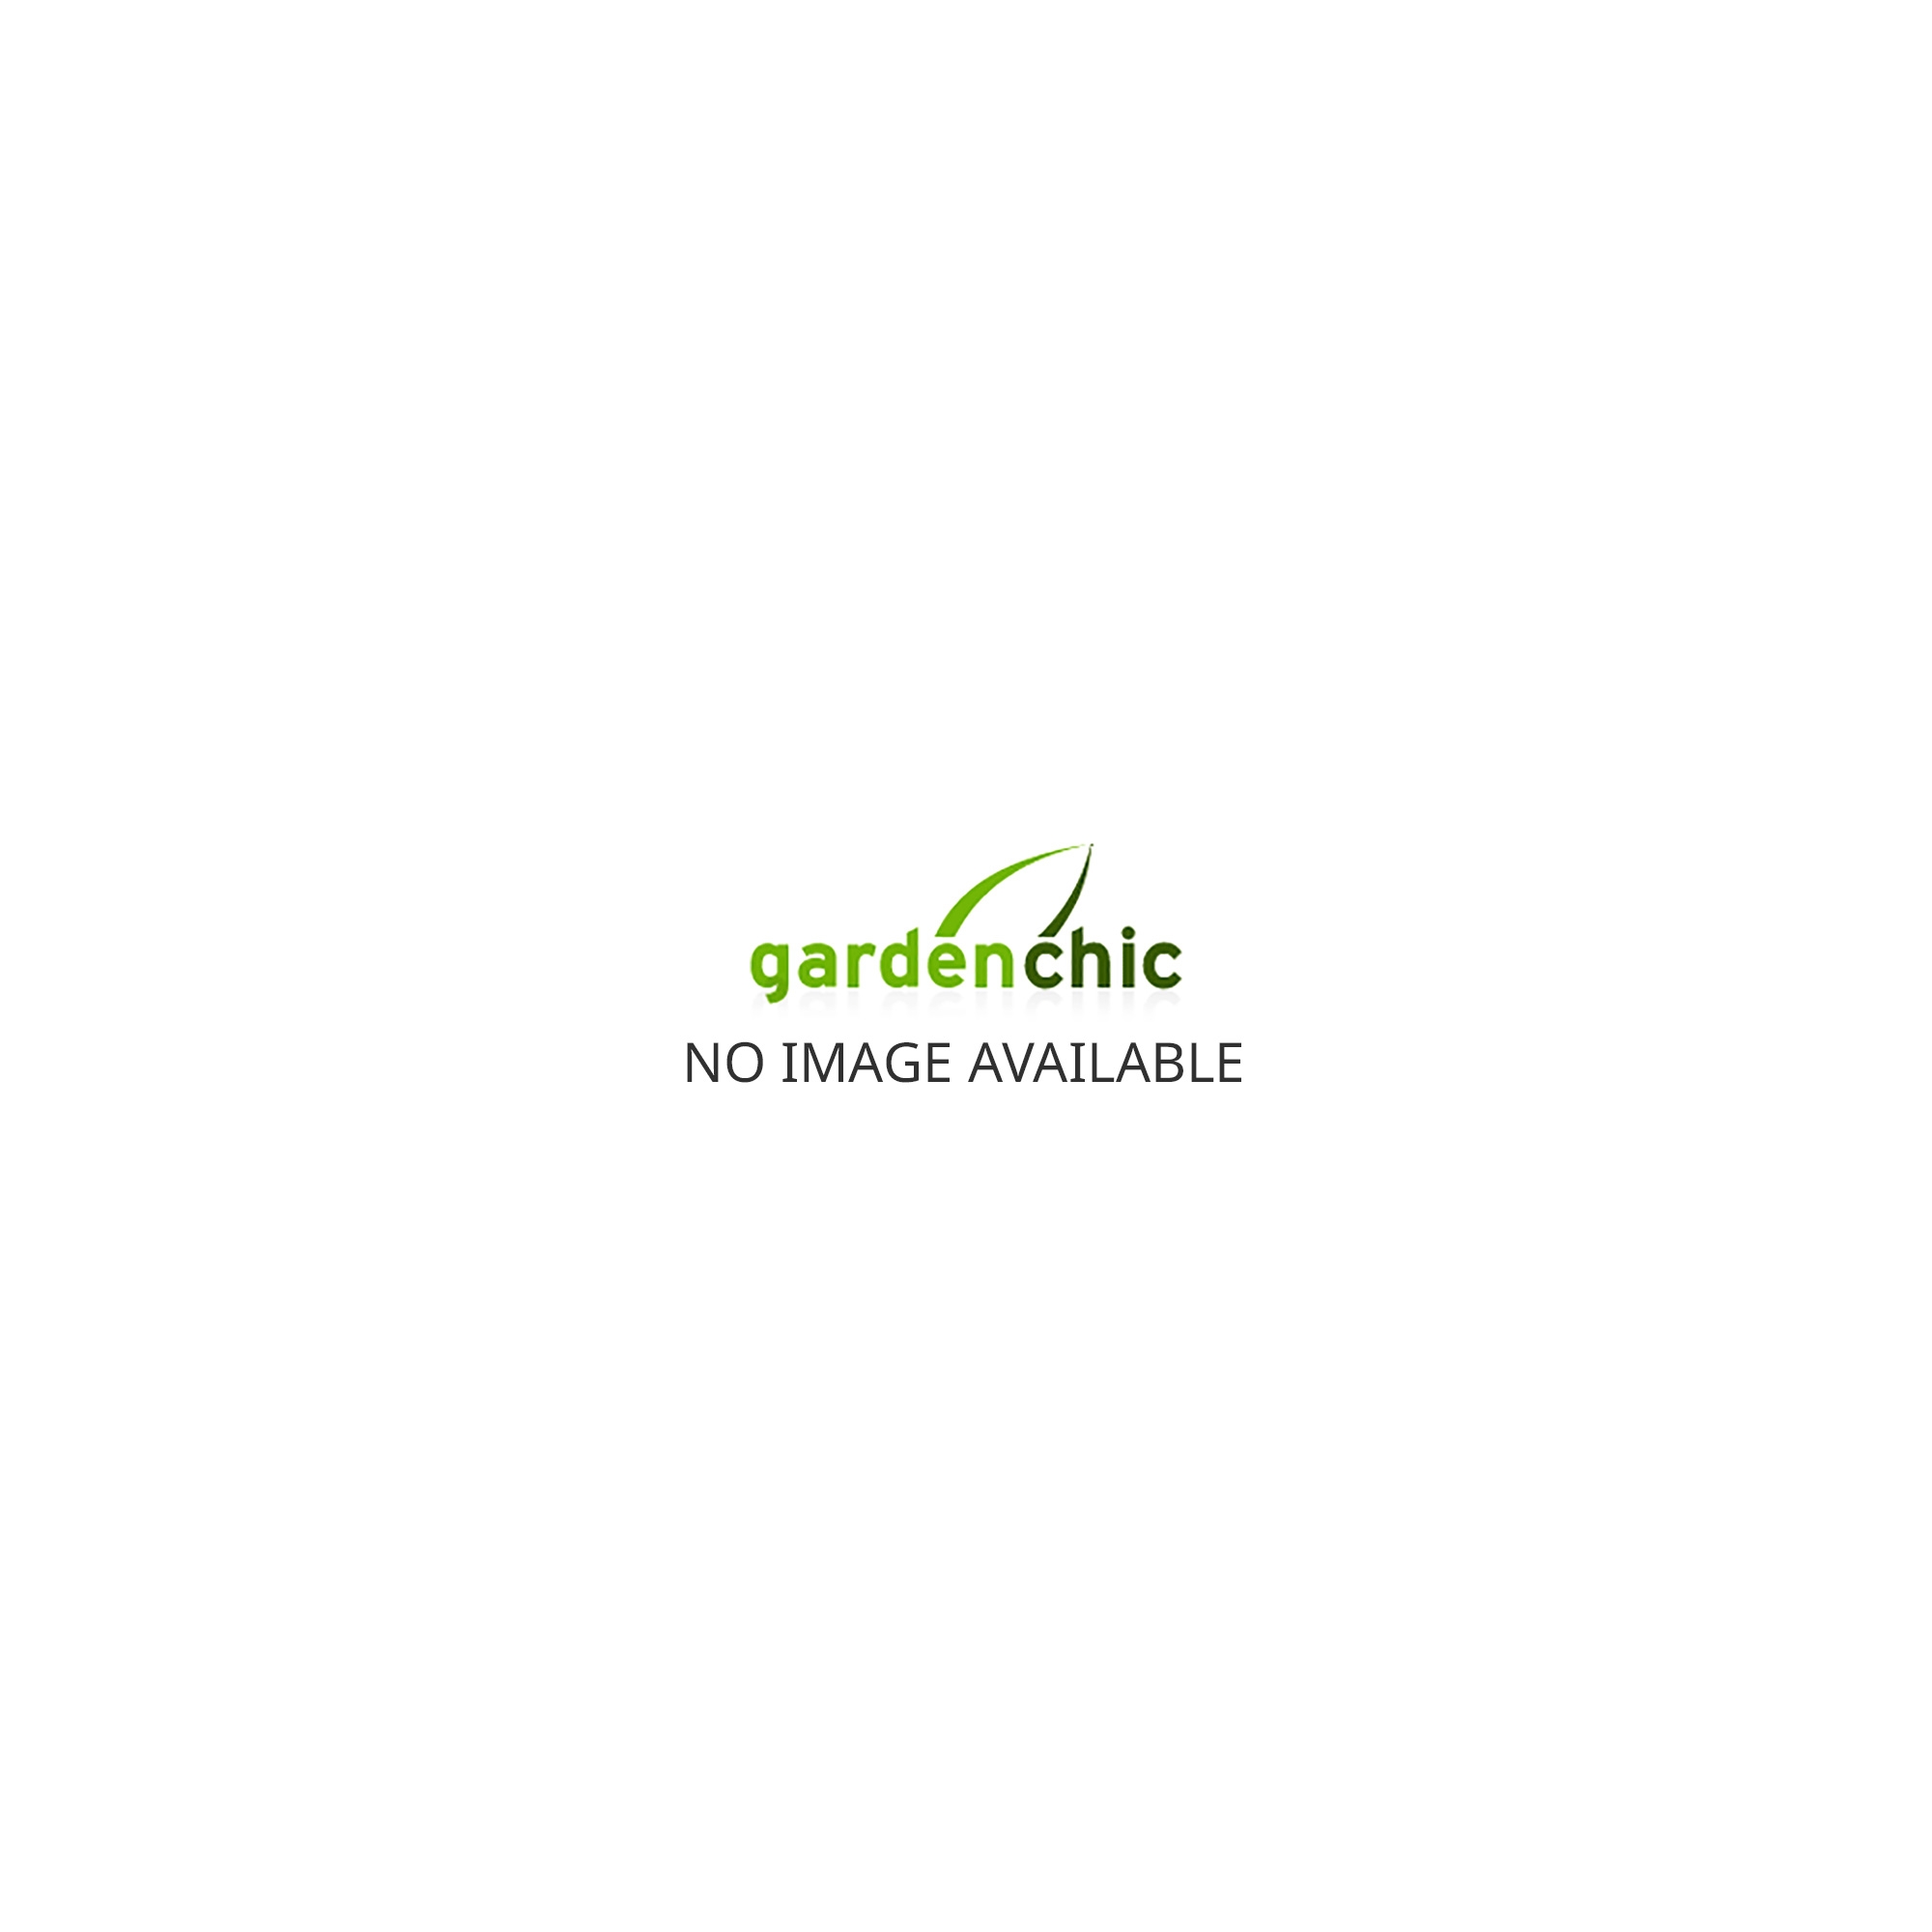 IDA 1300 Wall Garden 6ft x 2ft Greenhouse - Green FREE Matching Base until APRIL 2018